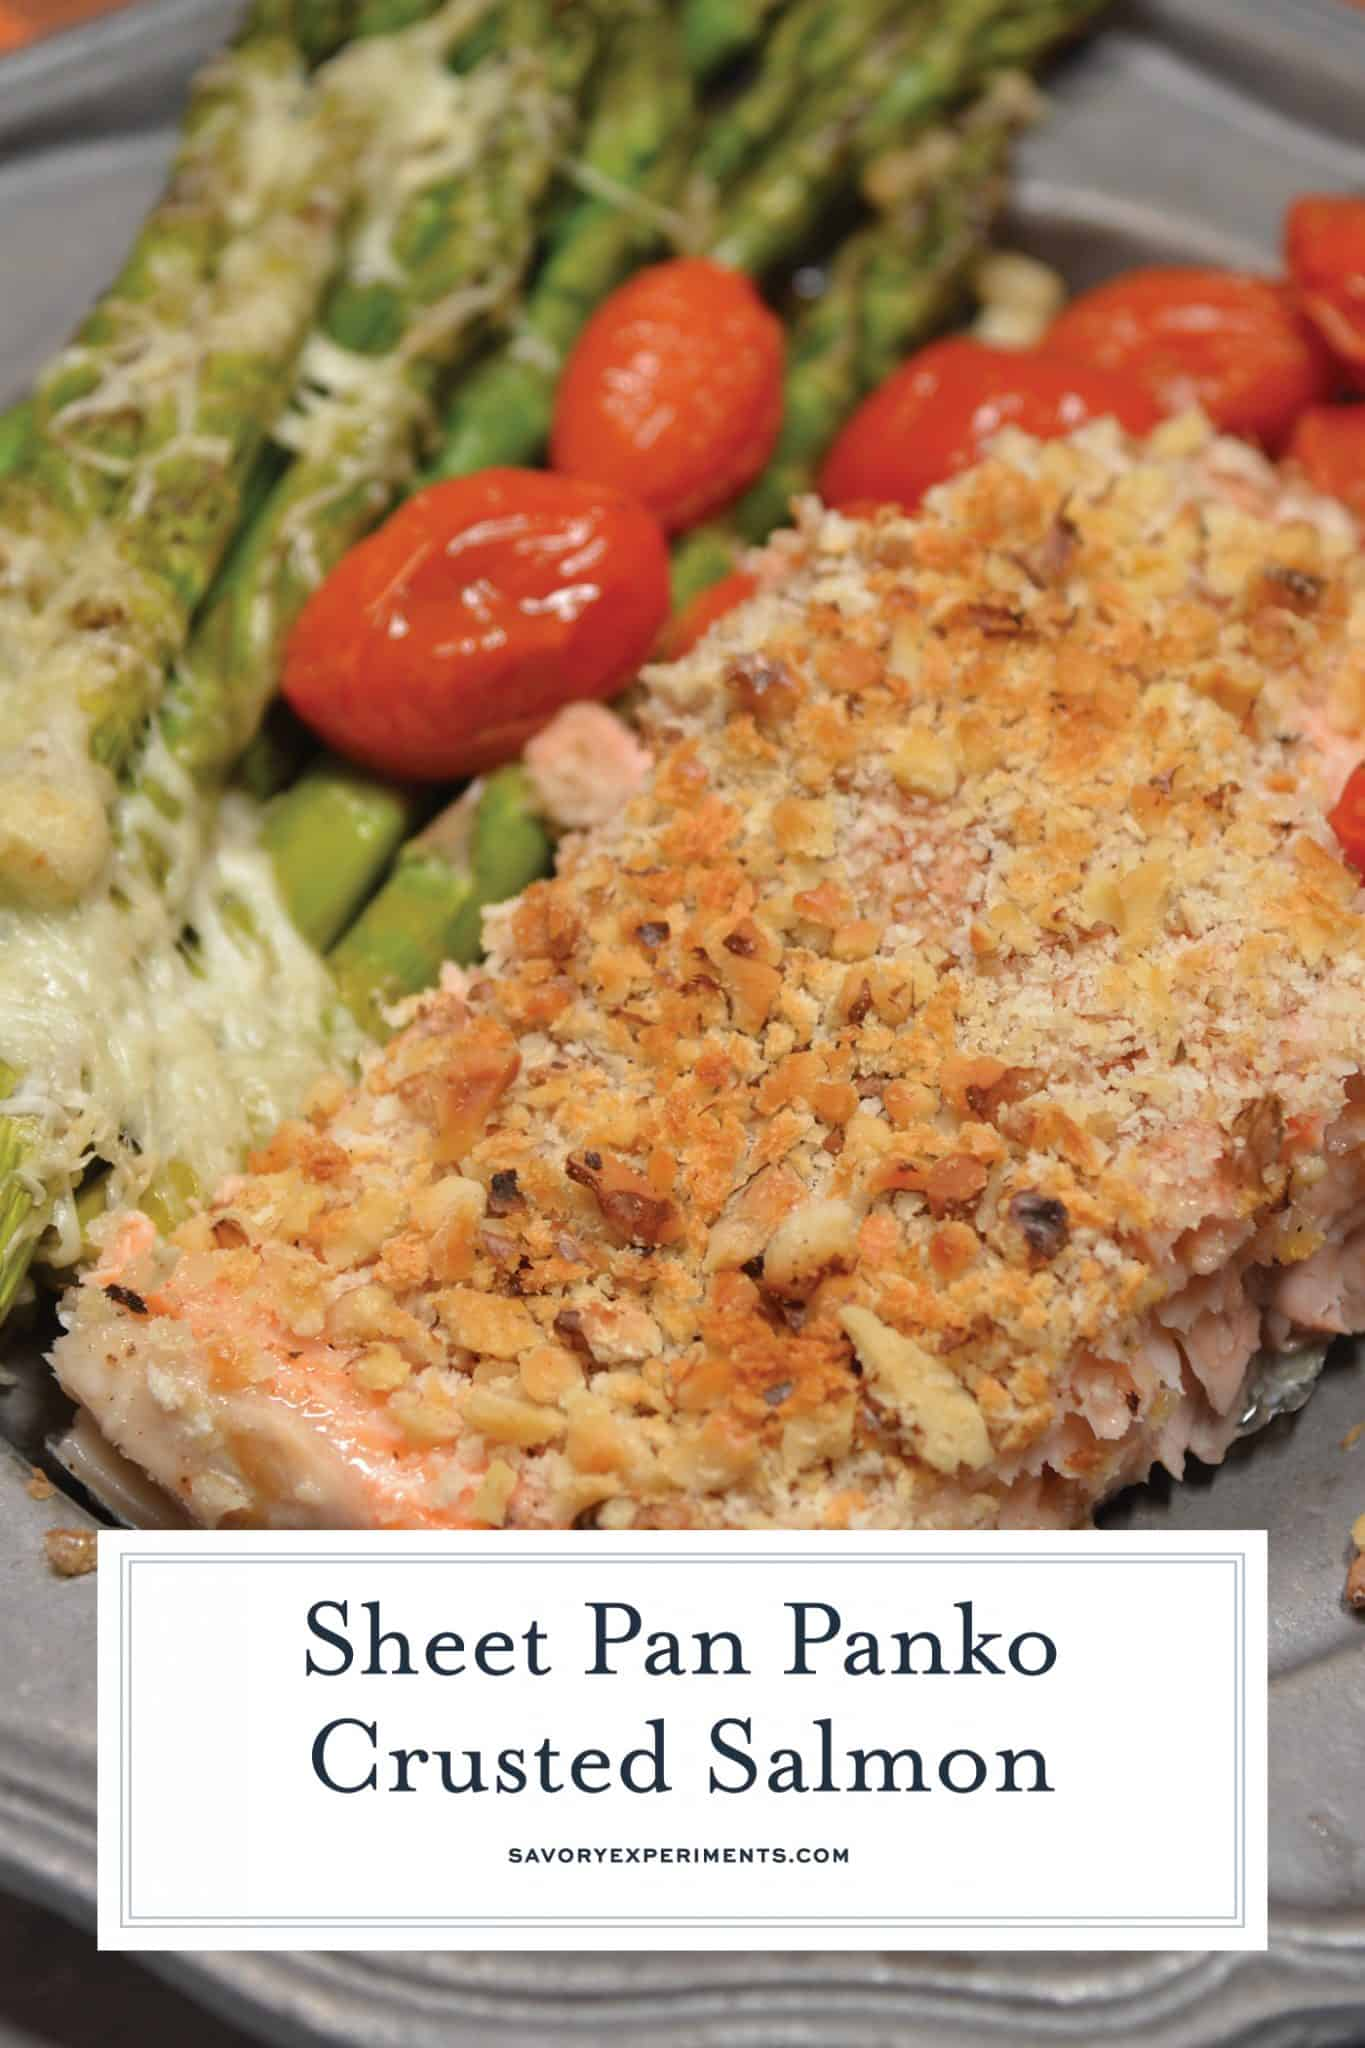 Panko Crusted Salmon is a fast, easy, and healthy weeknight meal! This recipe uses tomatoes, asparagus, and a crispy panko and walnut topping for your salmon! #crustedsalmon #sheetpandinners #salmonintheoven www.savoryexperiments.com